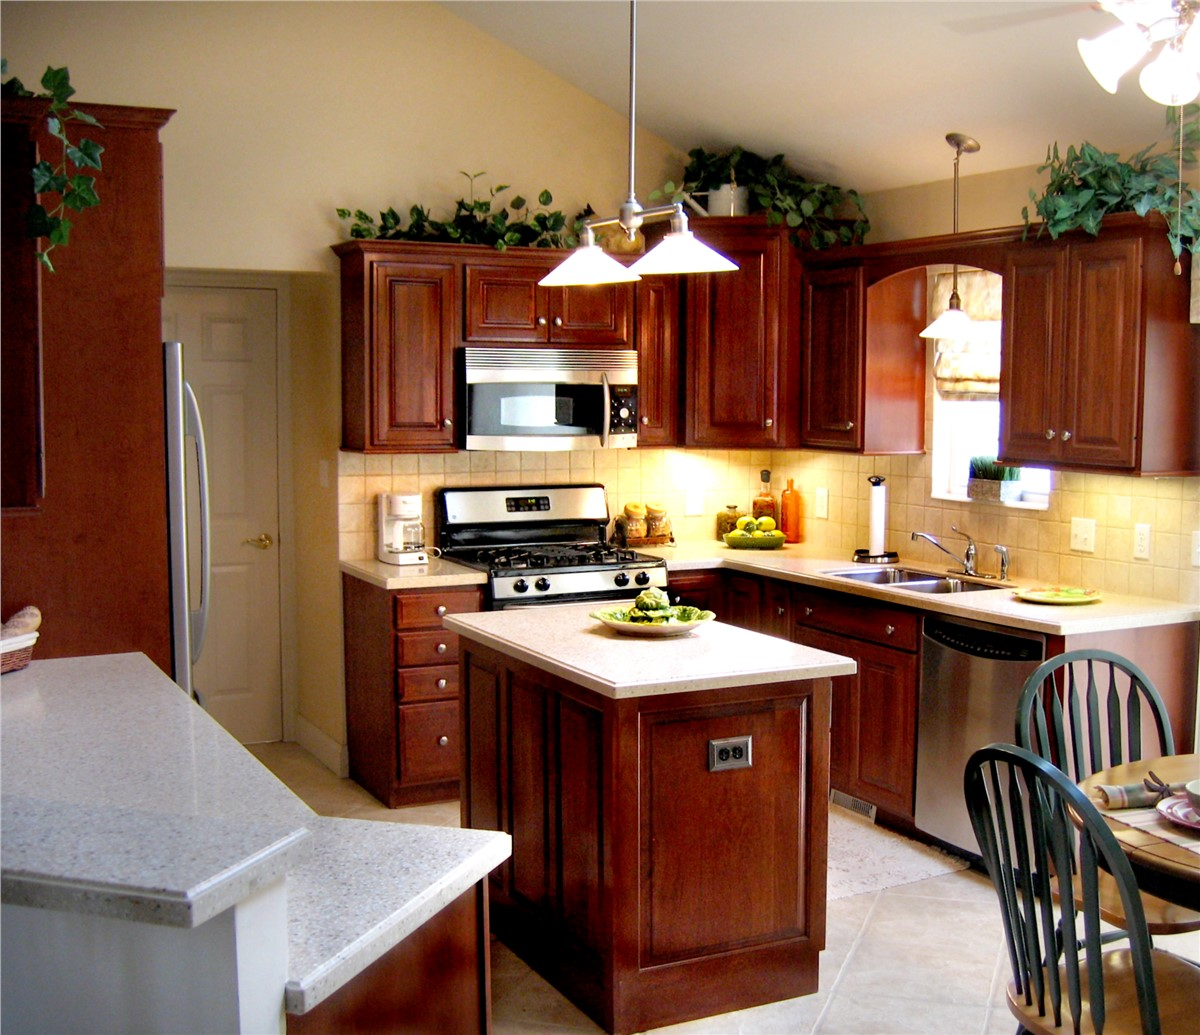 Replace Kitchen Cabinets Cost: Cabinet Refinishing Company